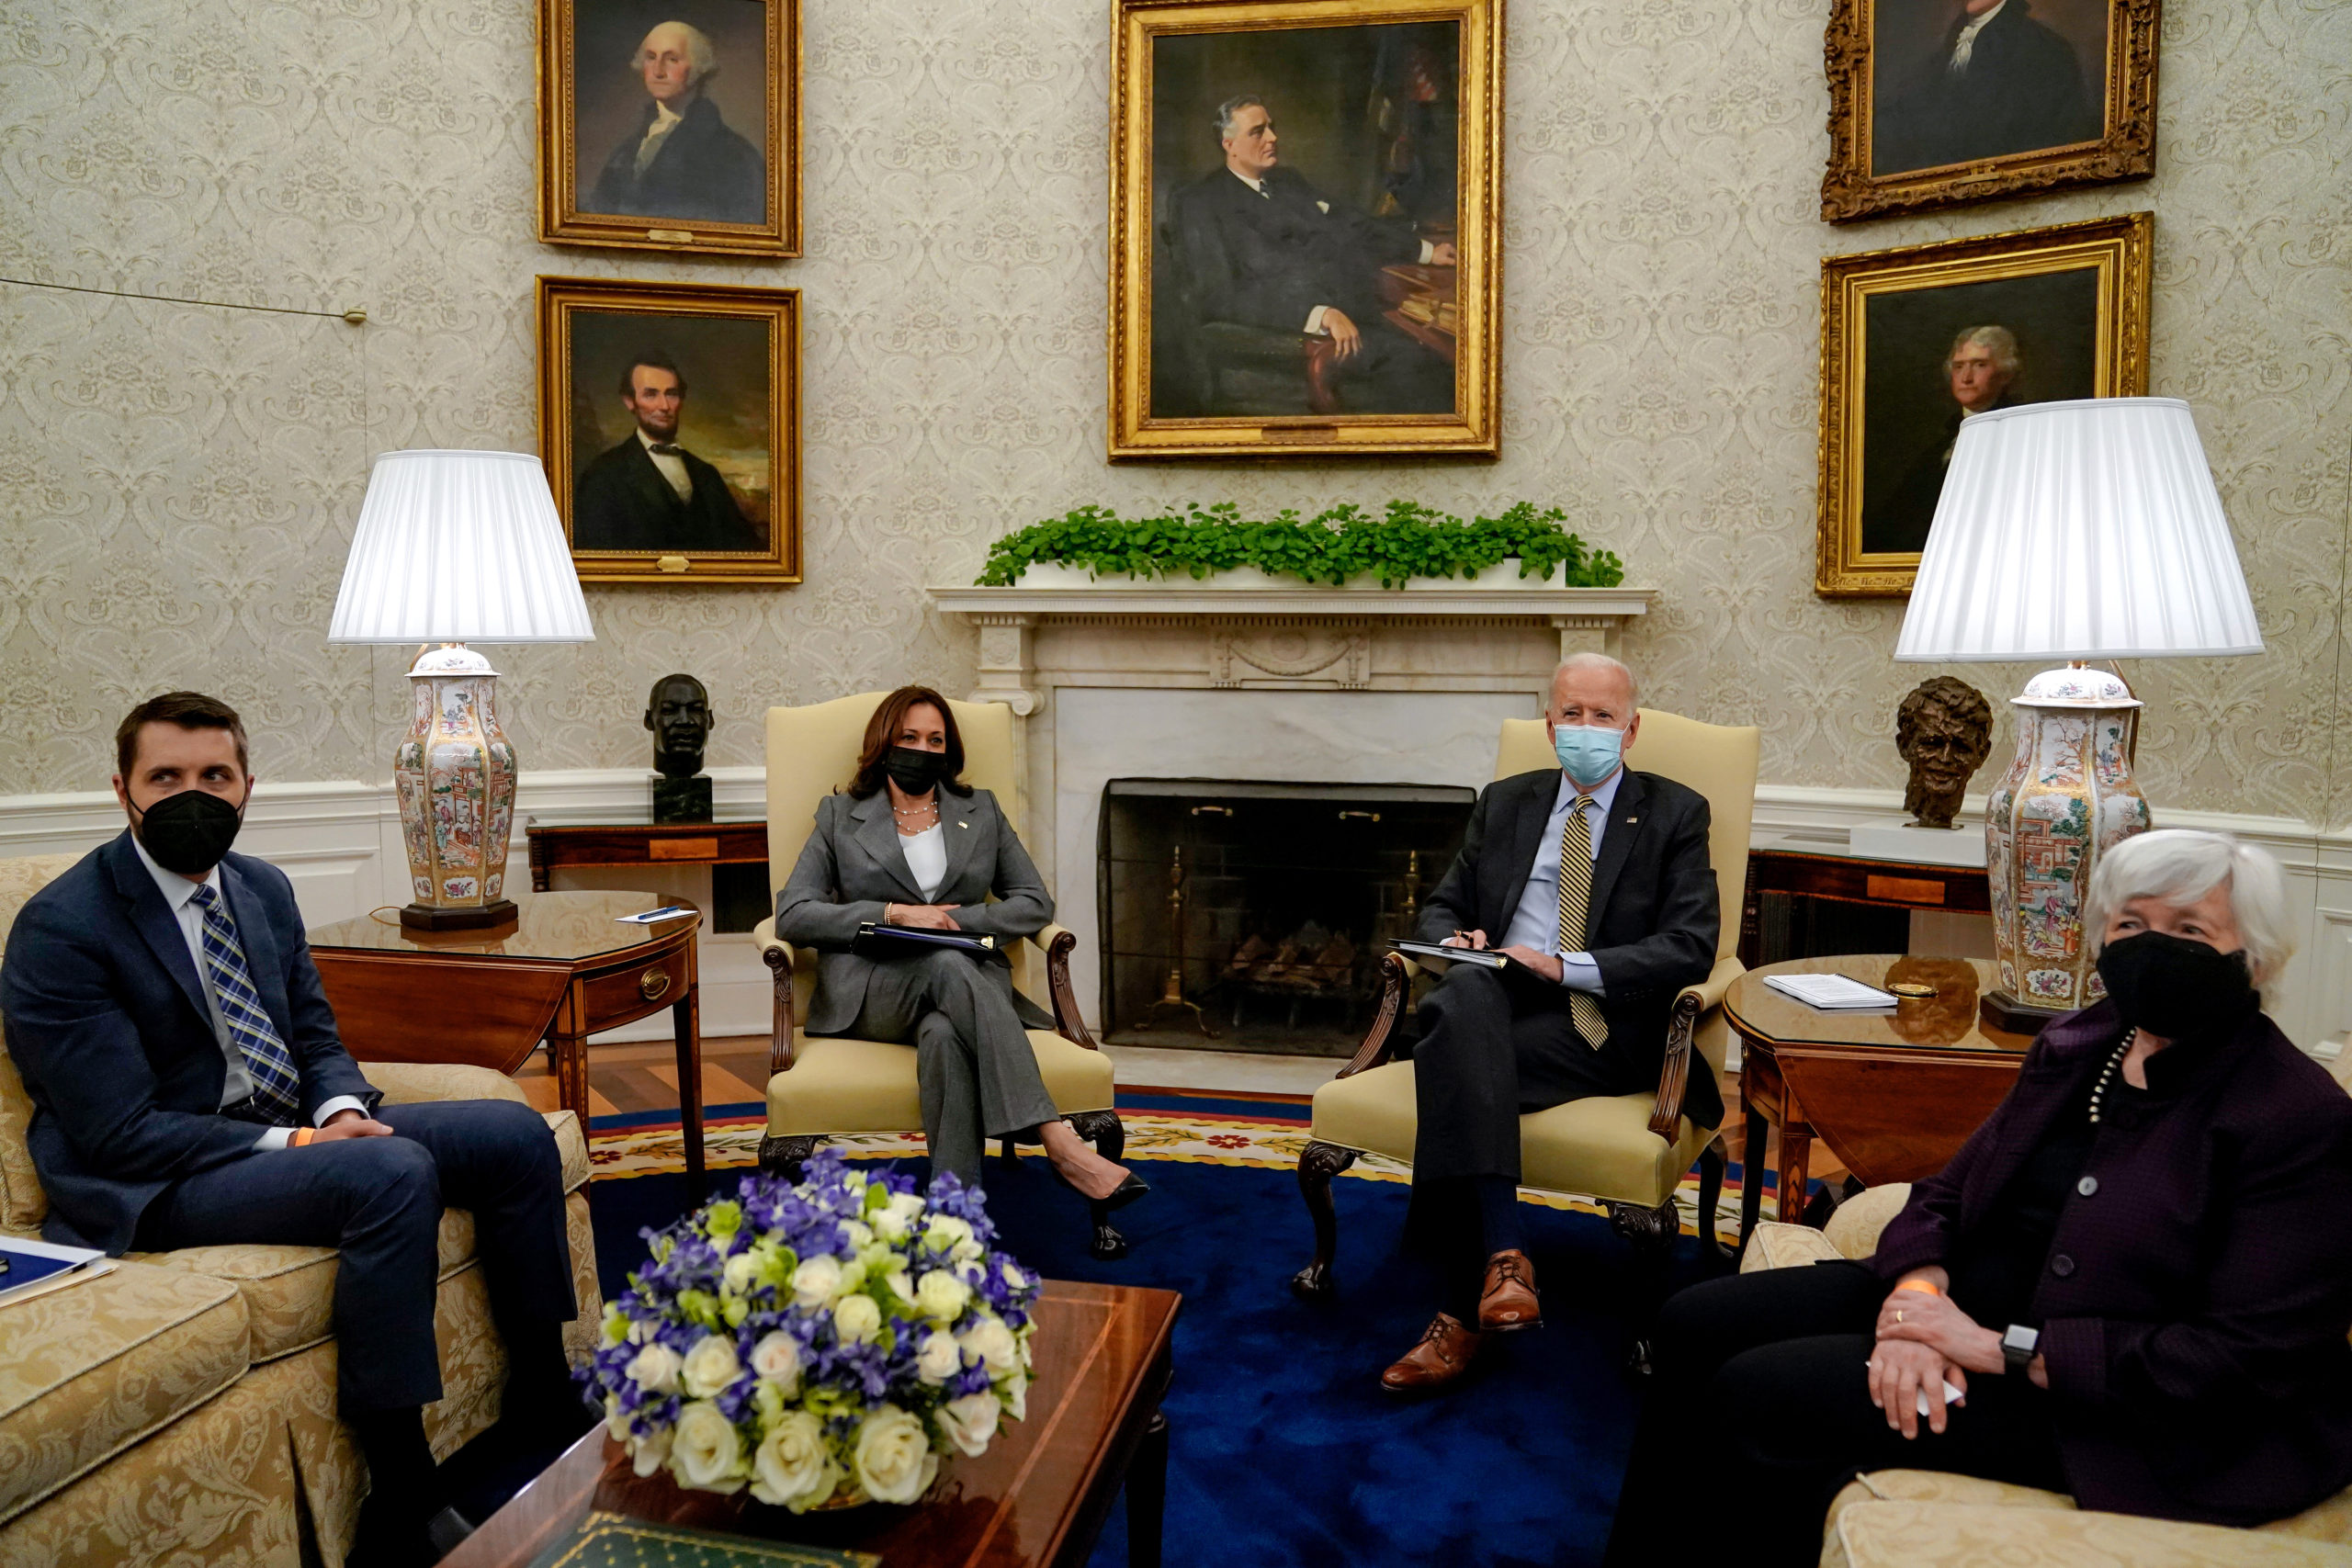 President Joe Biden meets with Vice President Kamala Harris and Secretary of the Treasury Janet Yellen at the White House on Friday. (Amr Alfiky/Pool/Getty Images)